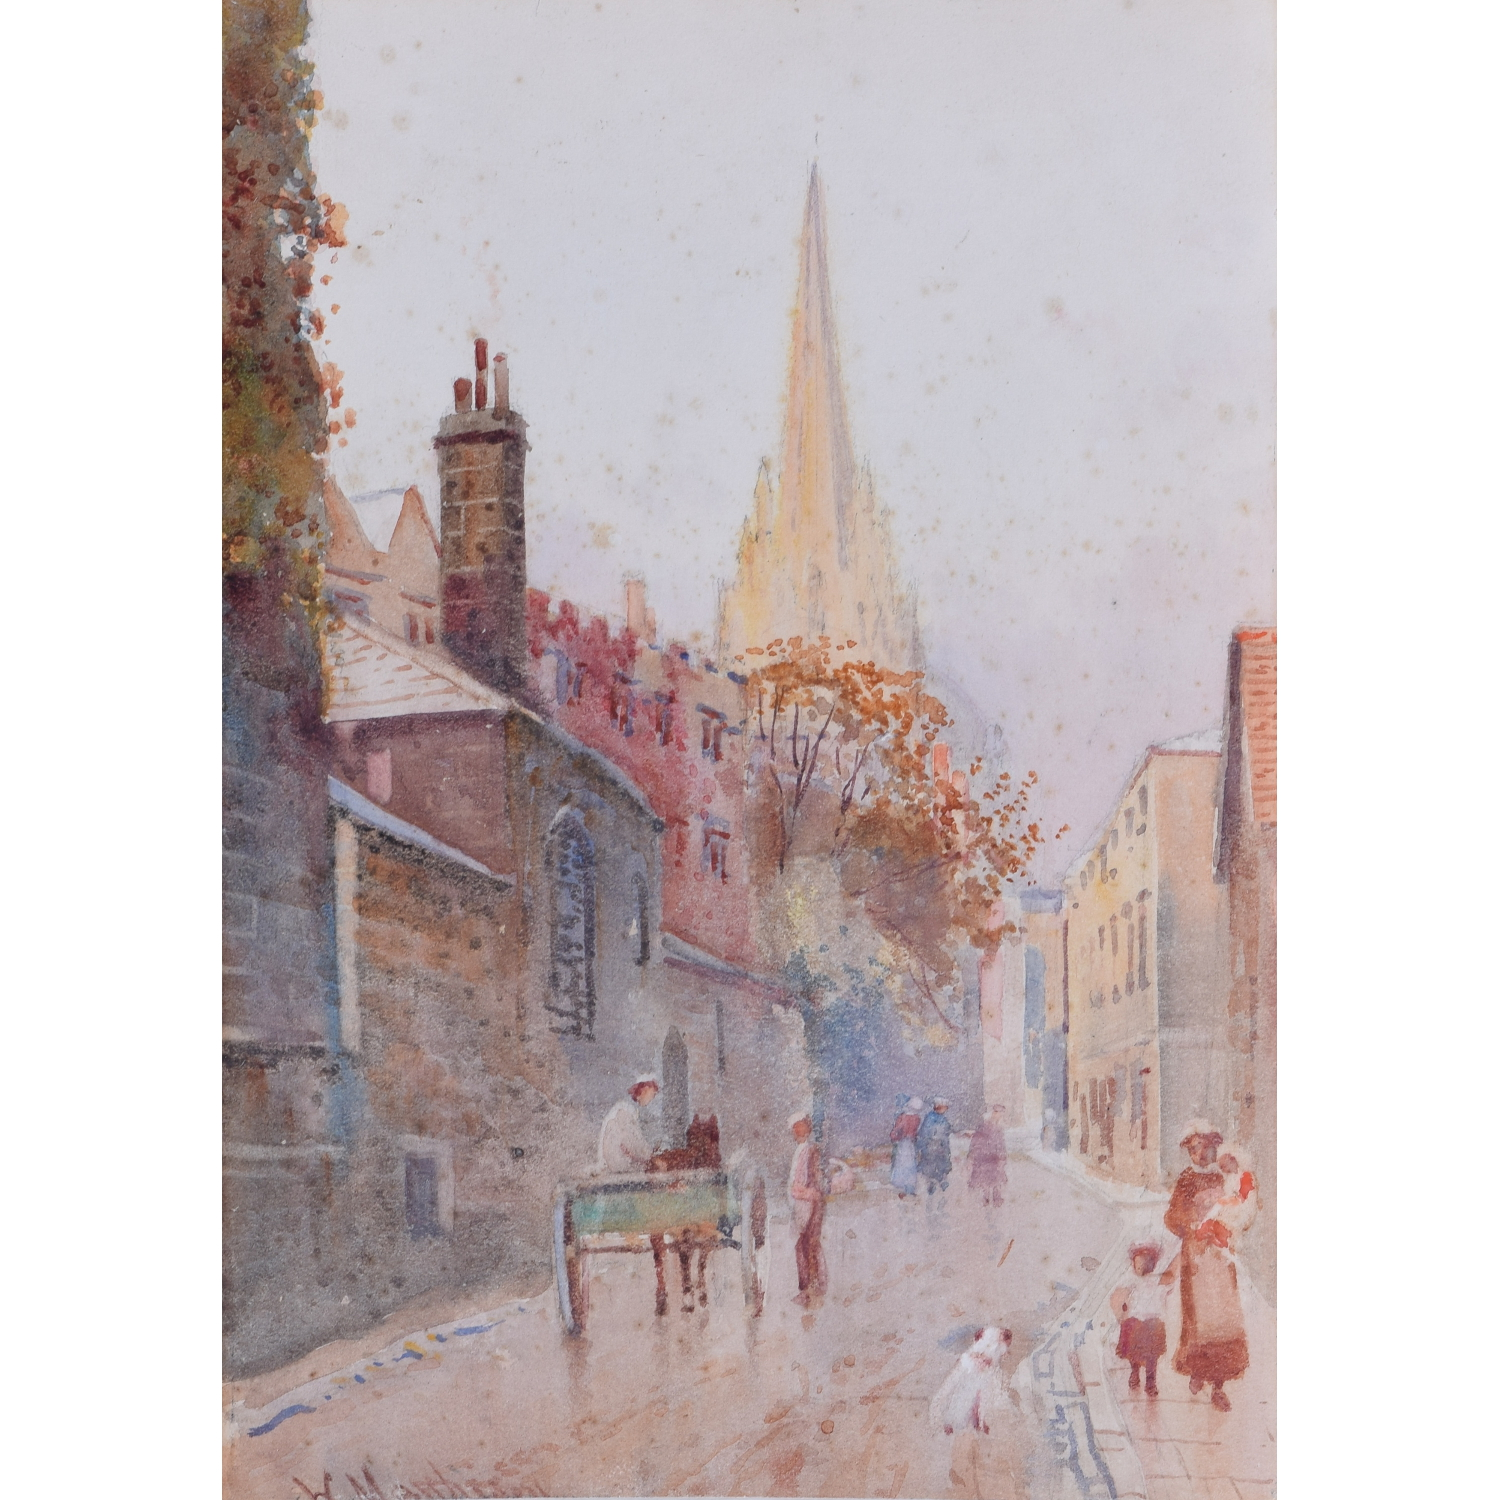 William Matthison Oriel Street, Oxford and St. Mary's Church